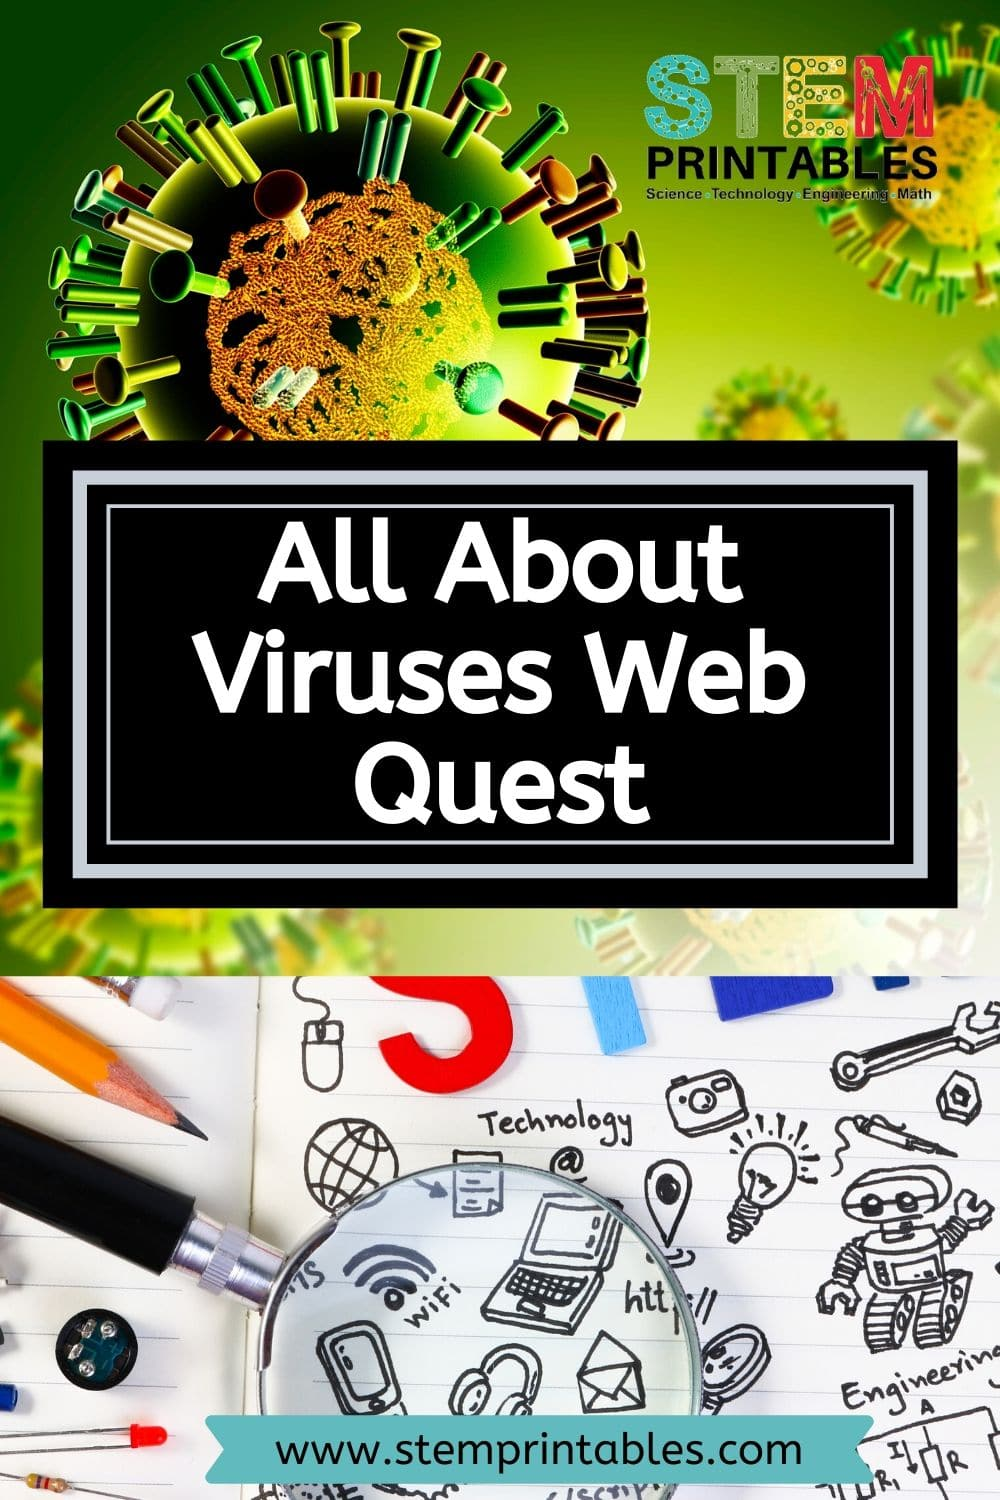 All About Viruses Web Quest - STEM Printables - Foldables ...